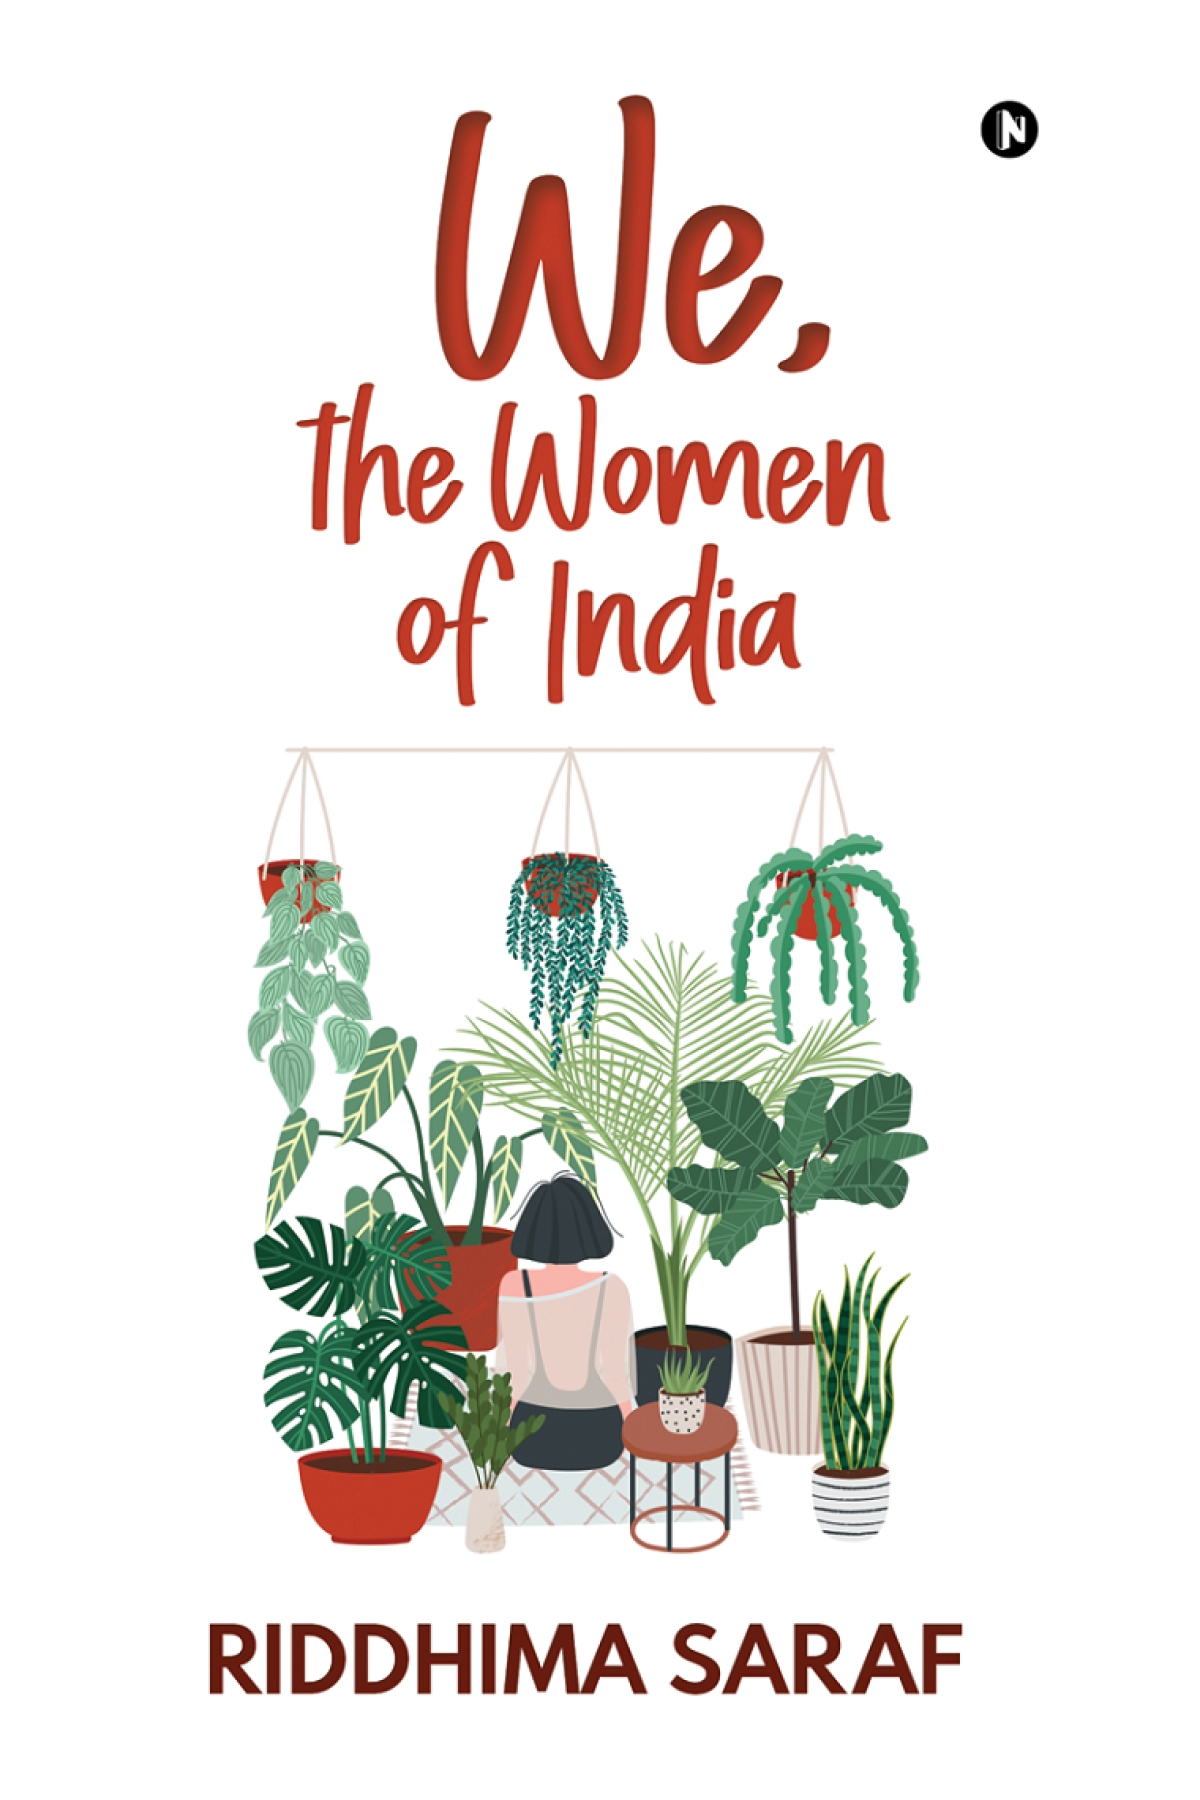 'We, the Women of India' review: Heart-warming short tales of love, loss and freedom